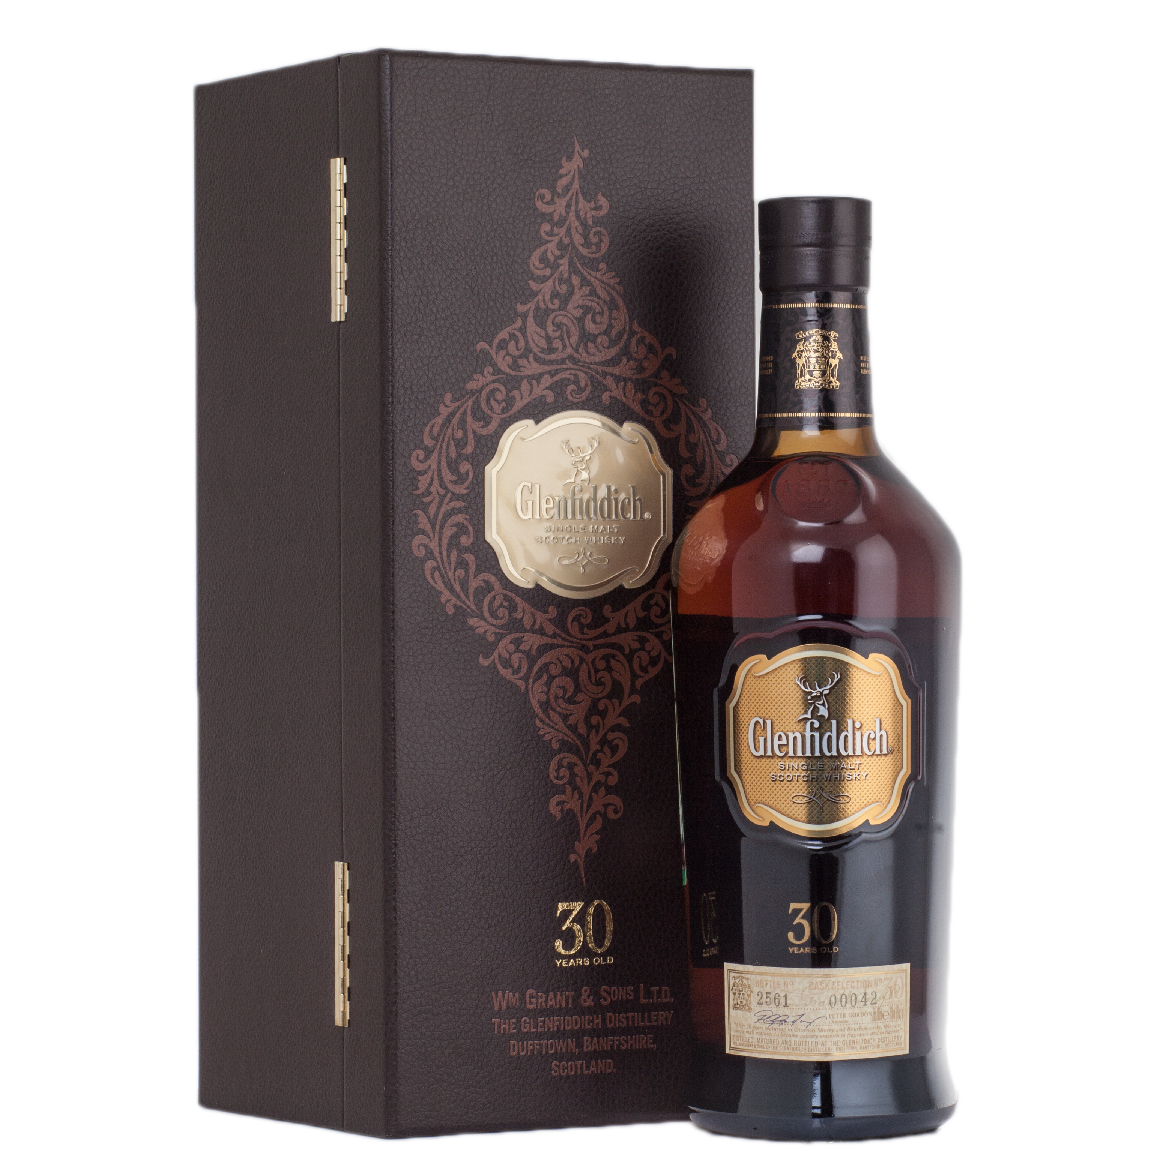 Glenfiddich 30 years old - виски Гленфиддик 30 лет 0.75 л